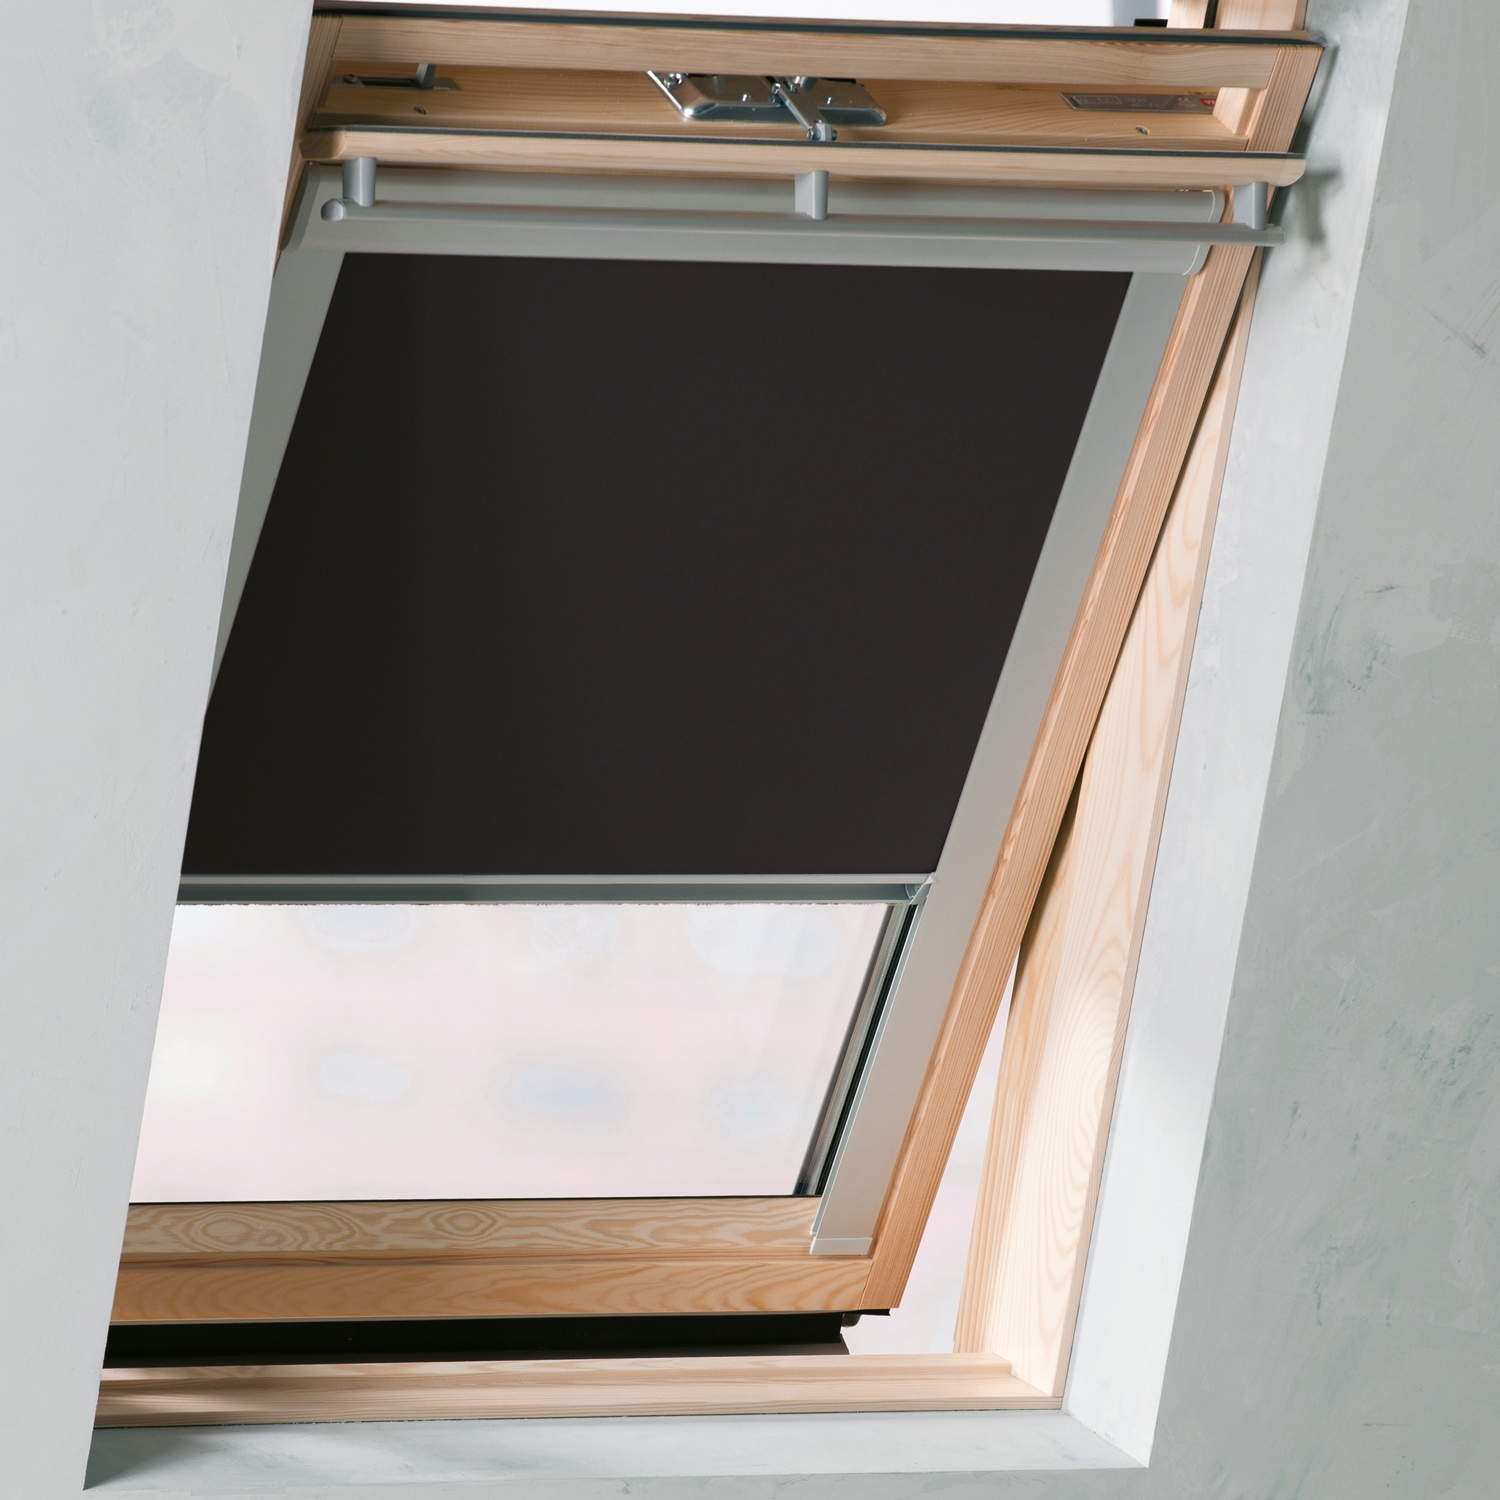 Dachfenster rollo schwarz ggl gpl ghl c02 von sol royal for Dimension velux gfl 1